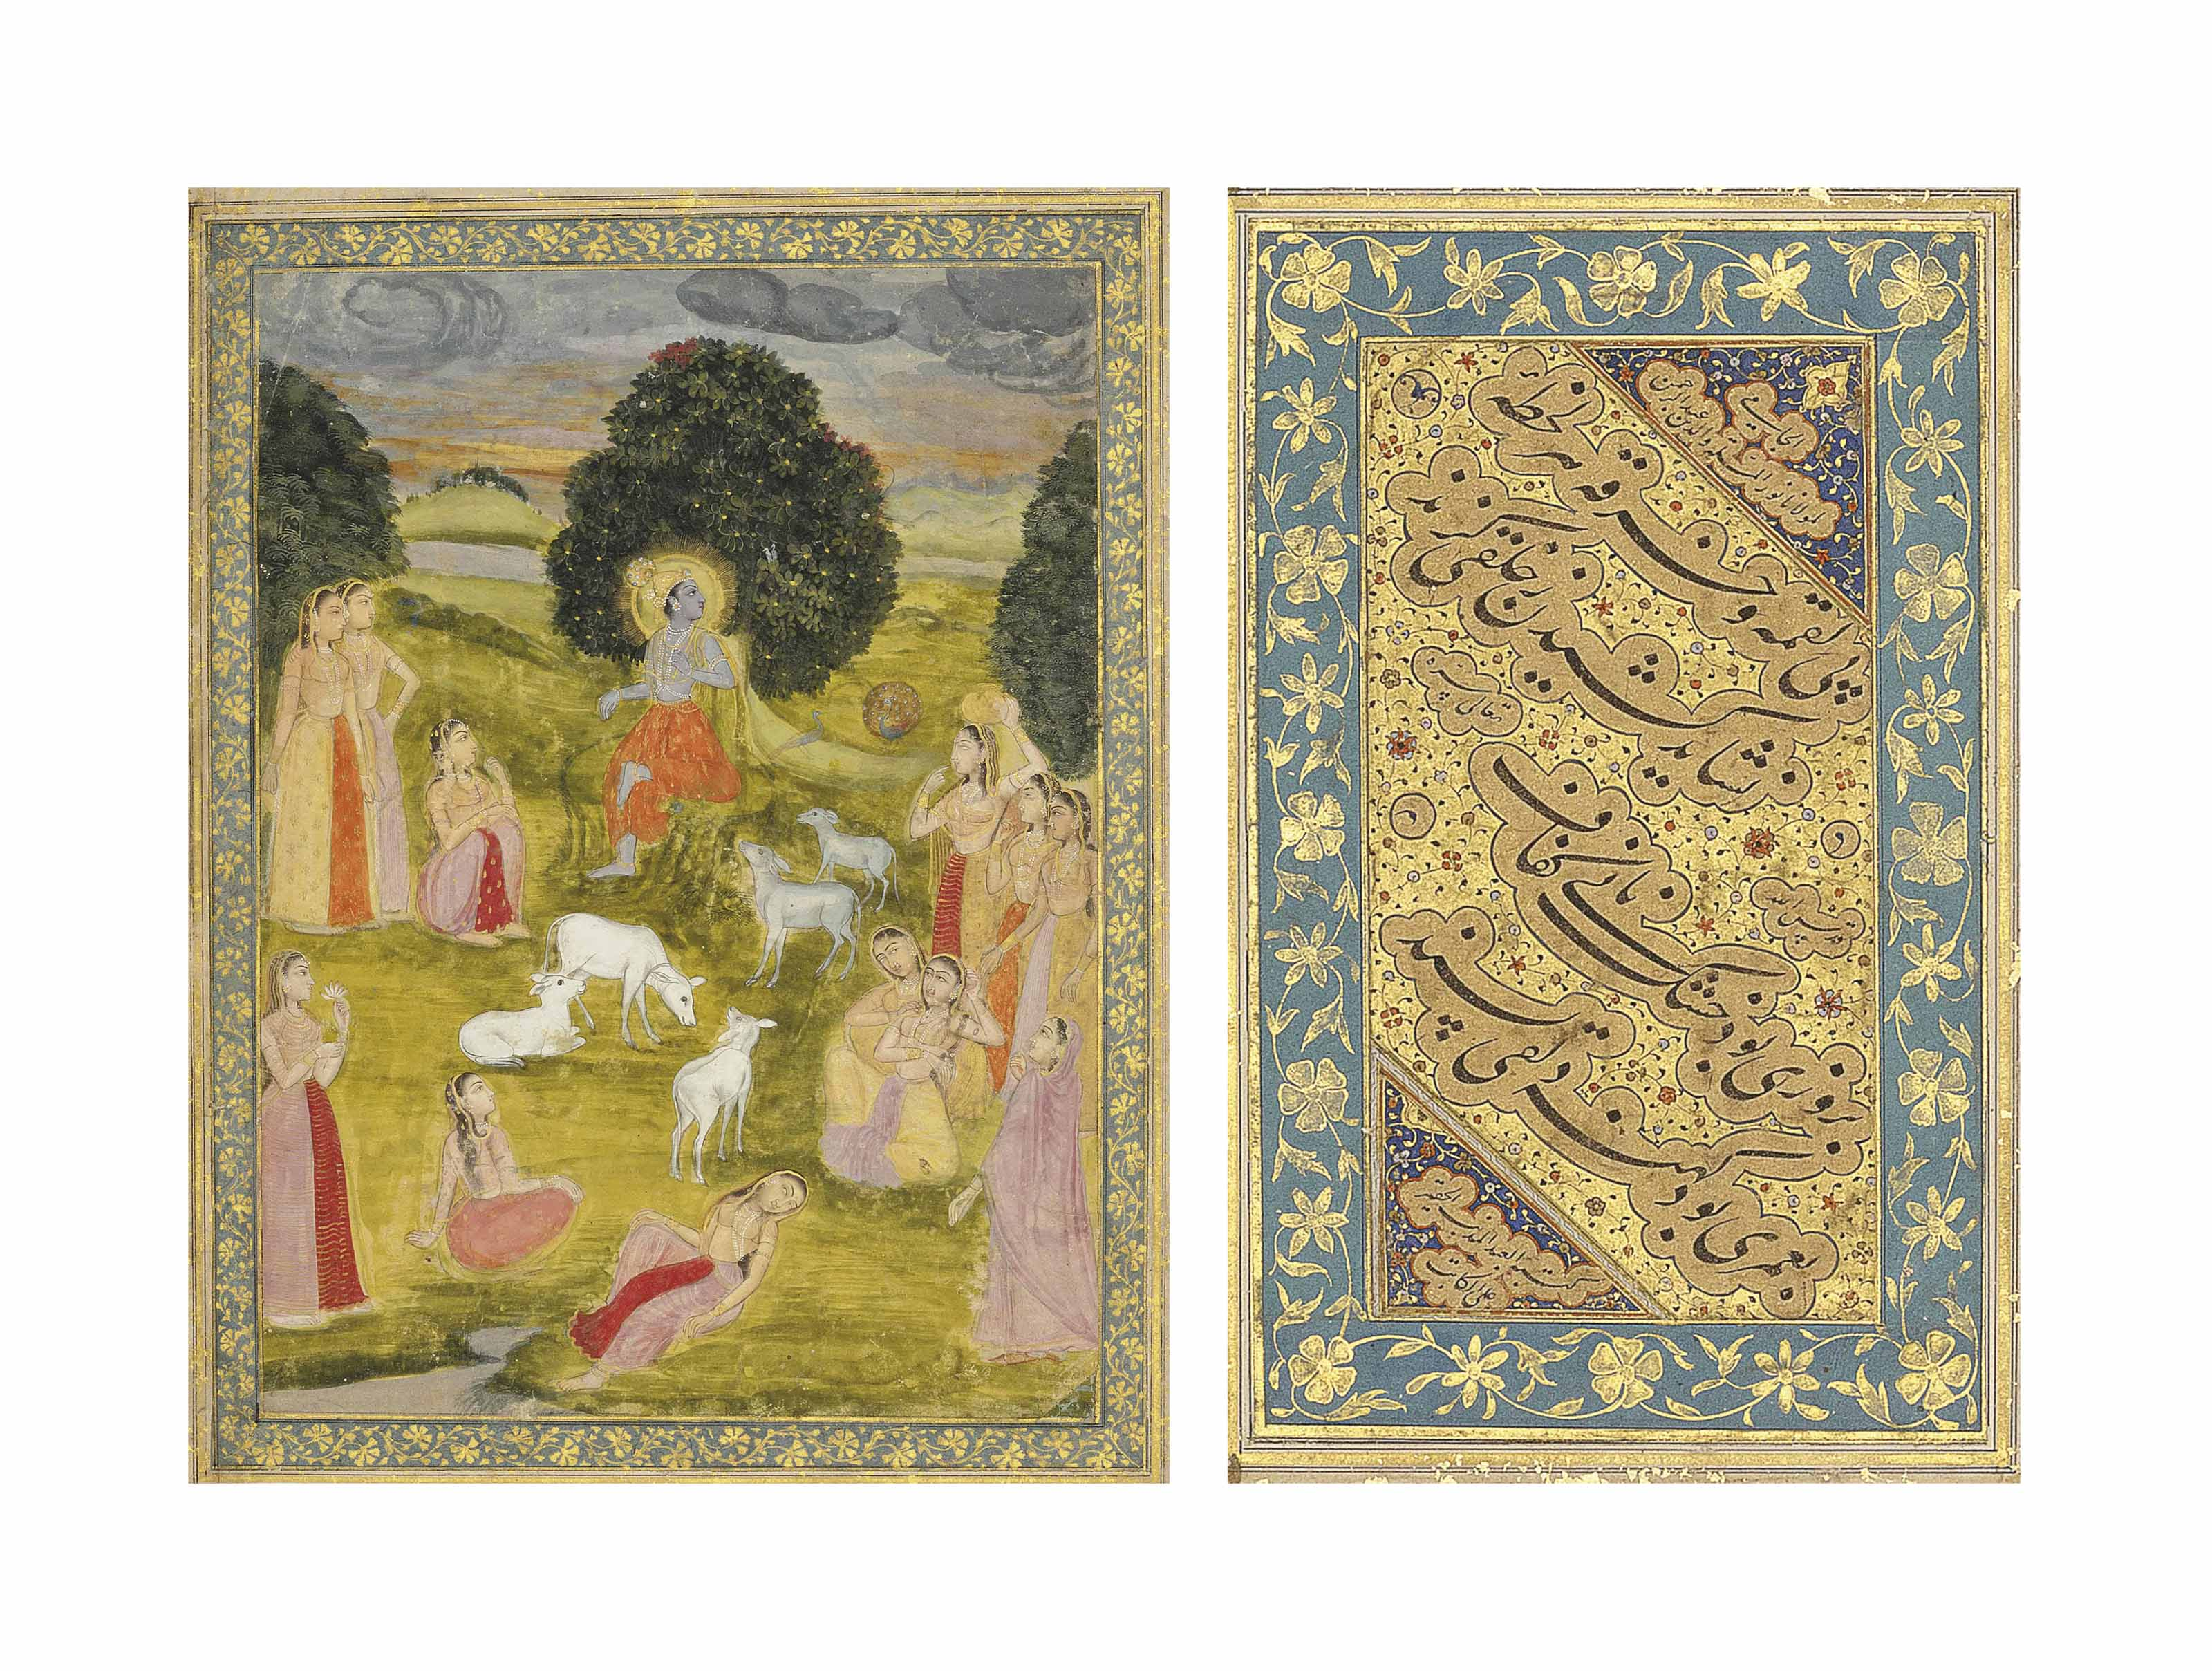 A PAGE FROM A MUGHAL ALBUM: KR